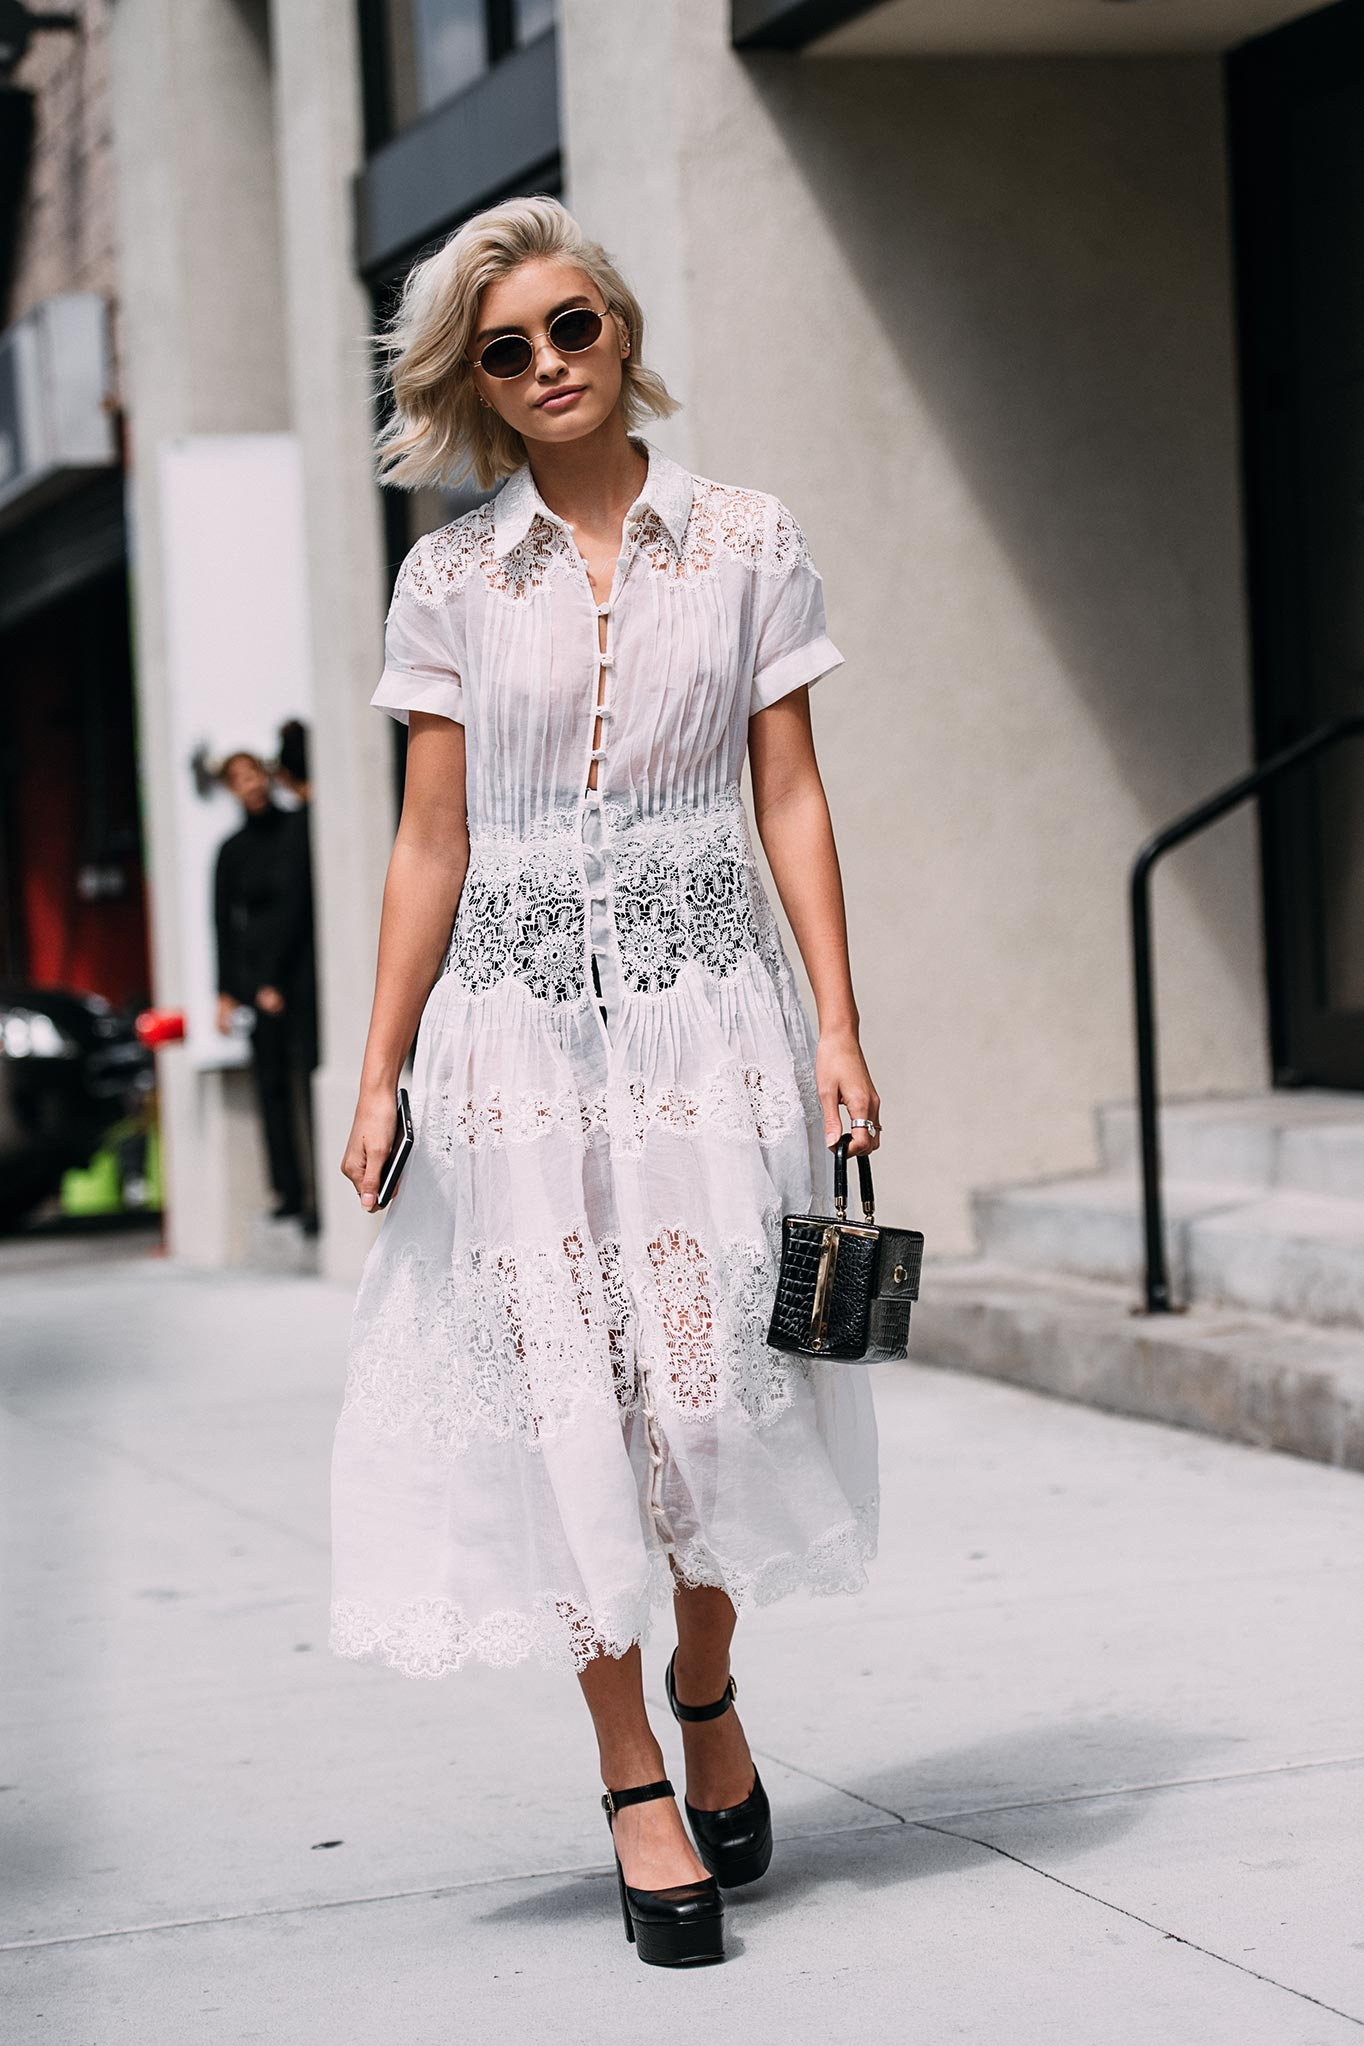 Sarah Ellen at New York Fashion Week Spring/Summer 2016